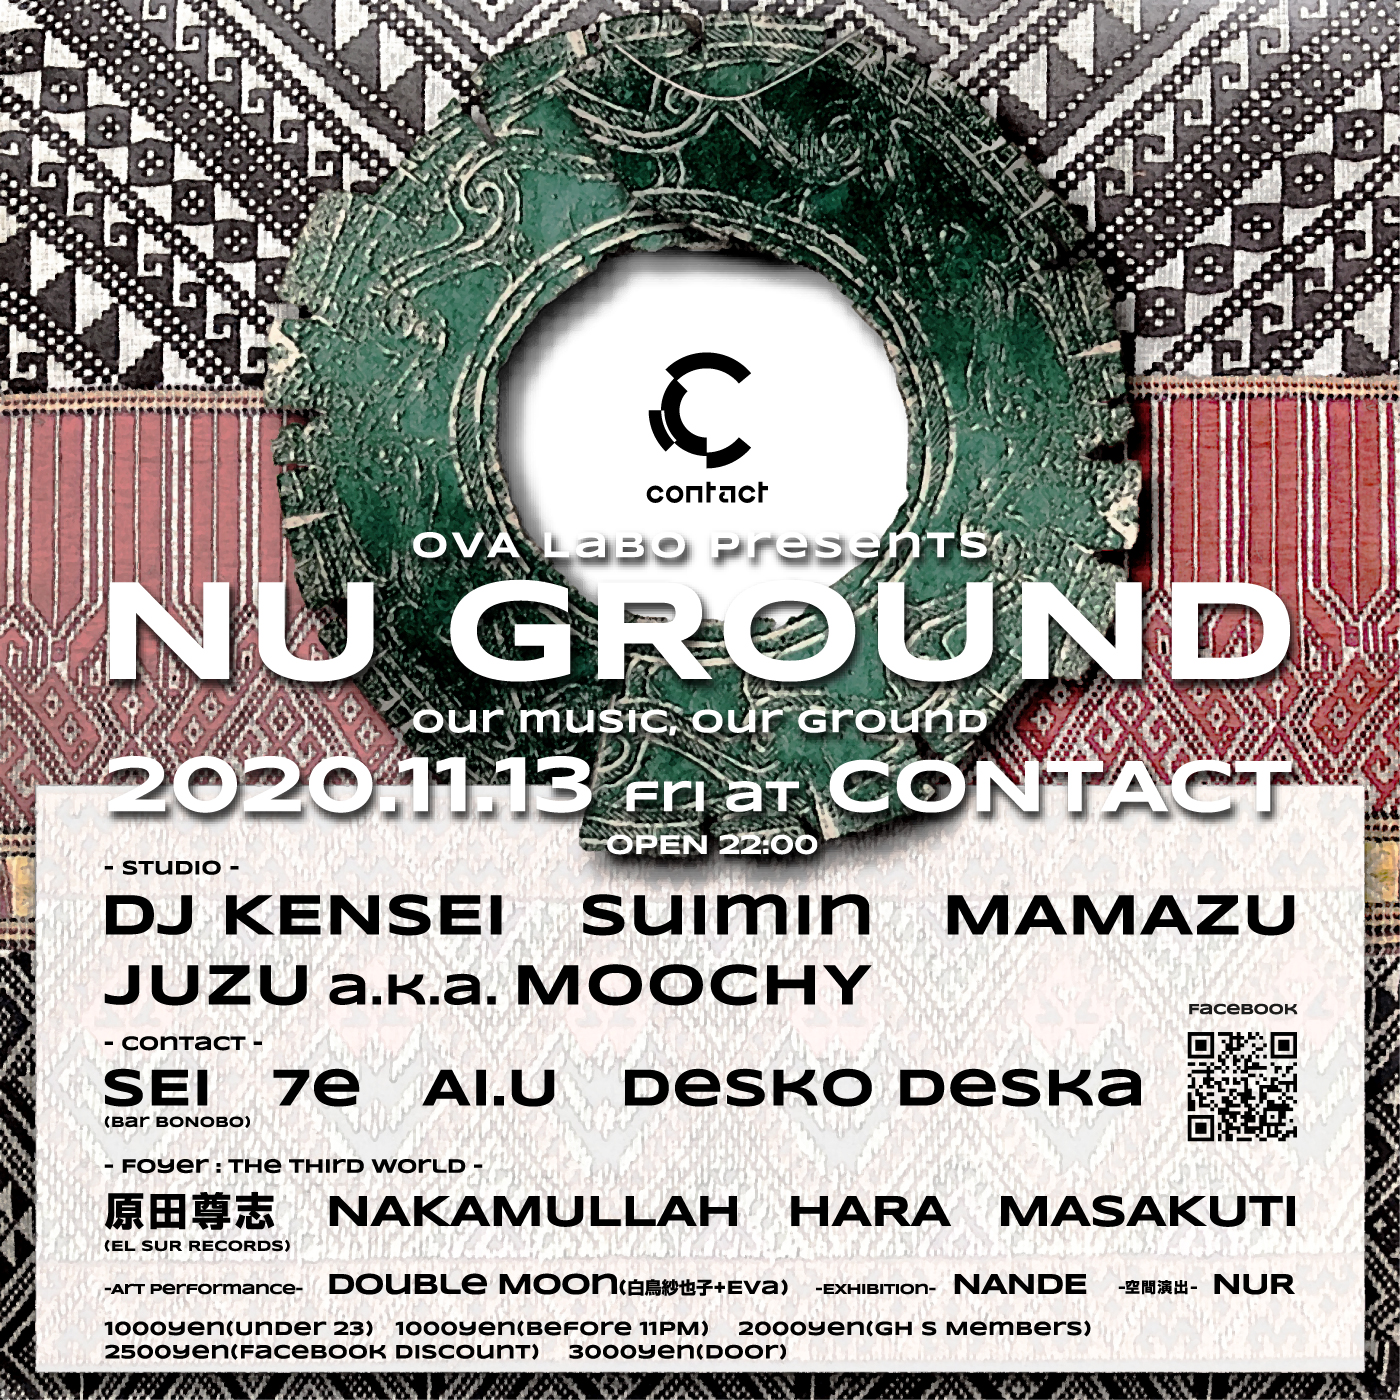 11/13 @Contact NU GROUND – our music, our ground